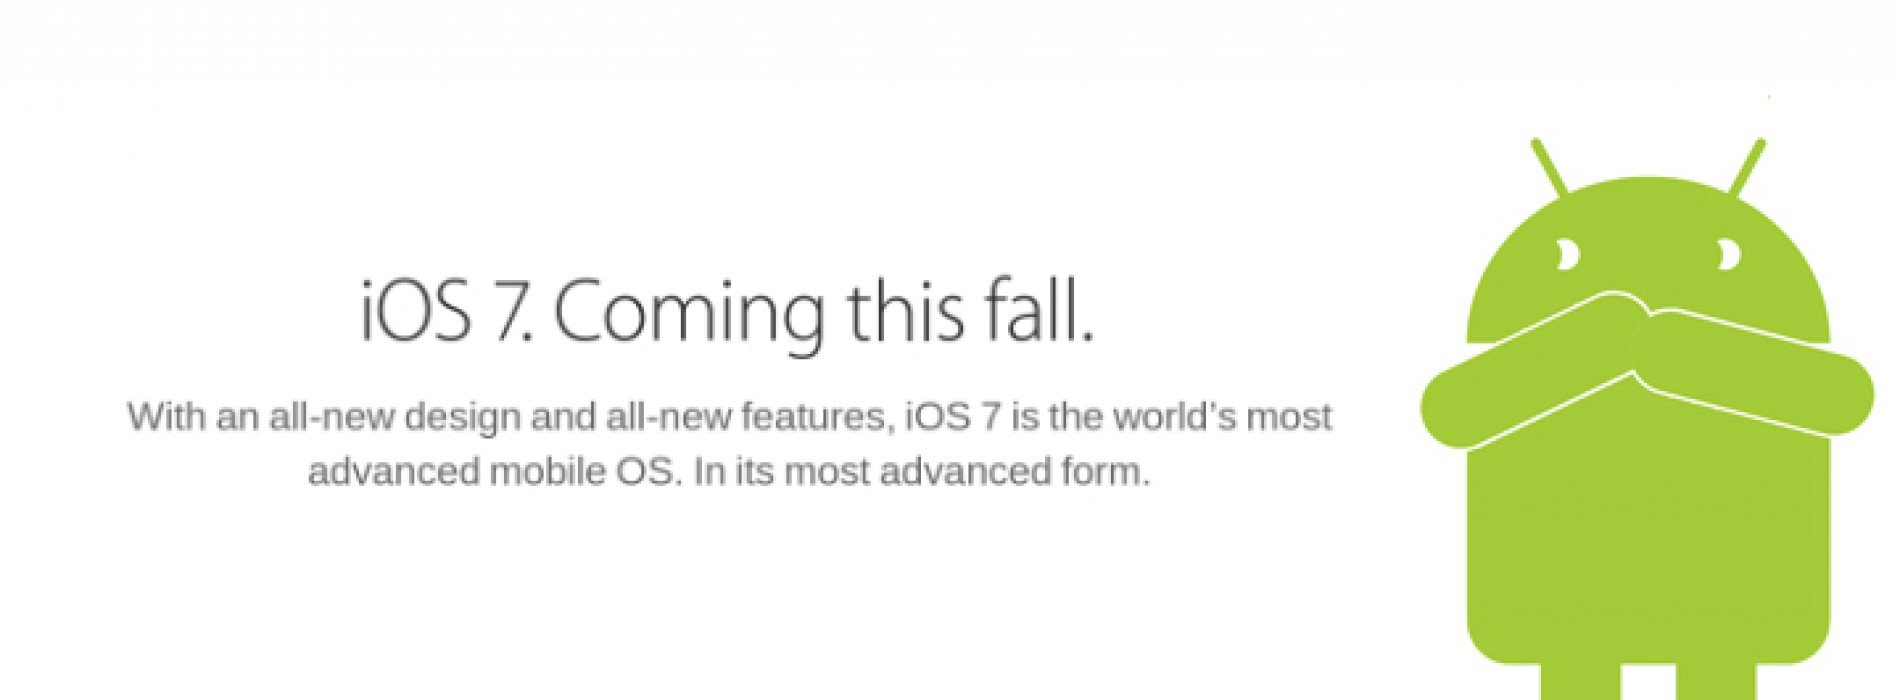 Why Android fans need to stop acting butthurt over iOS 7